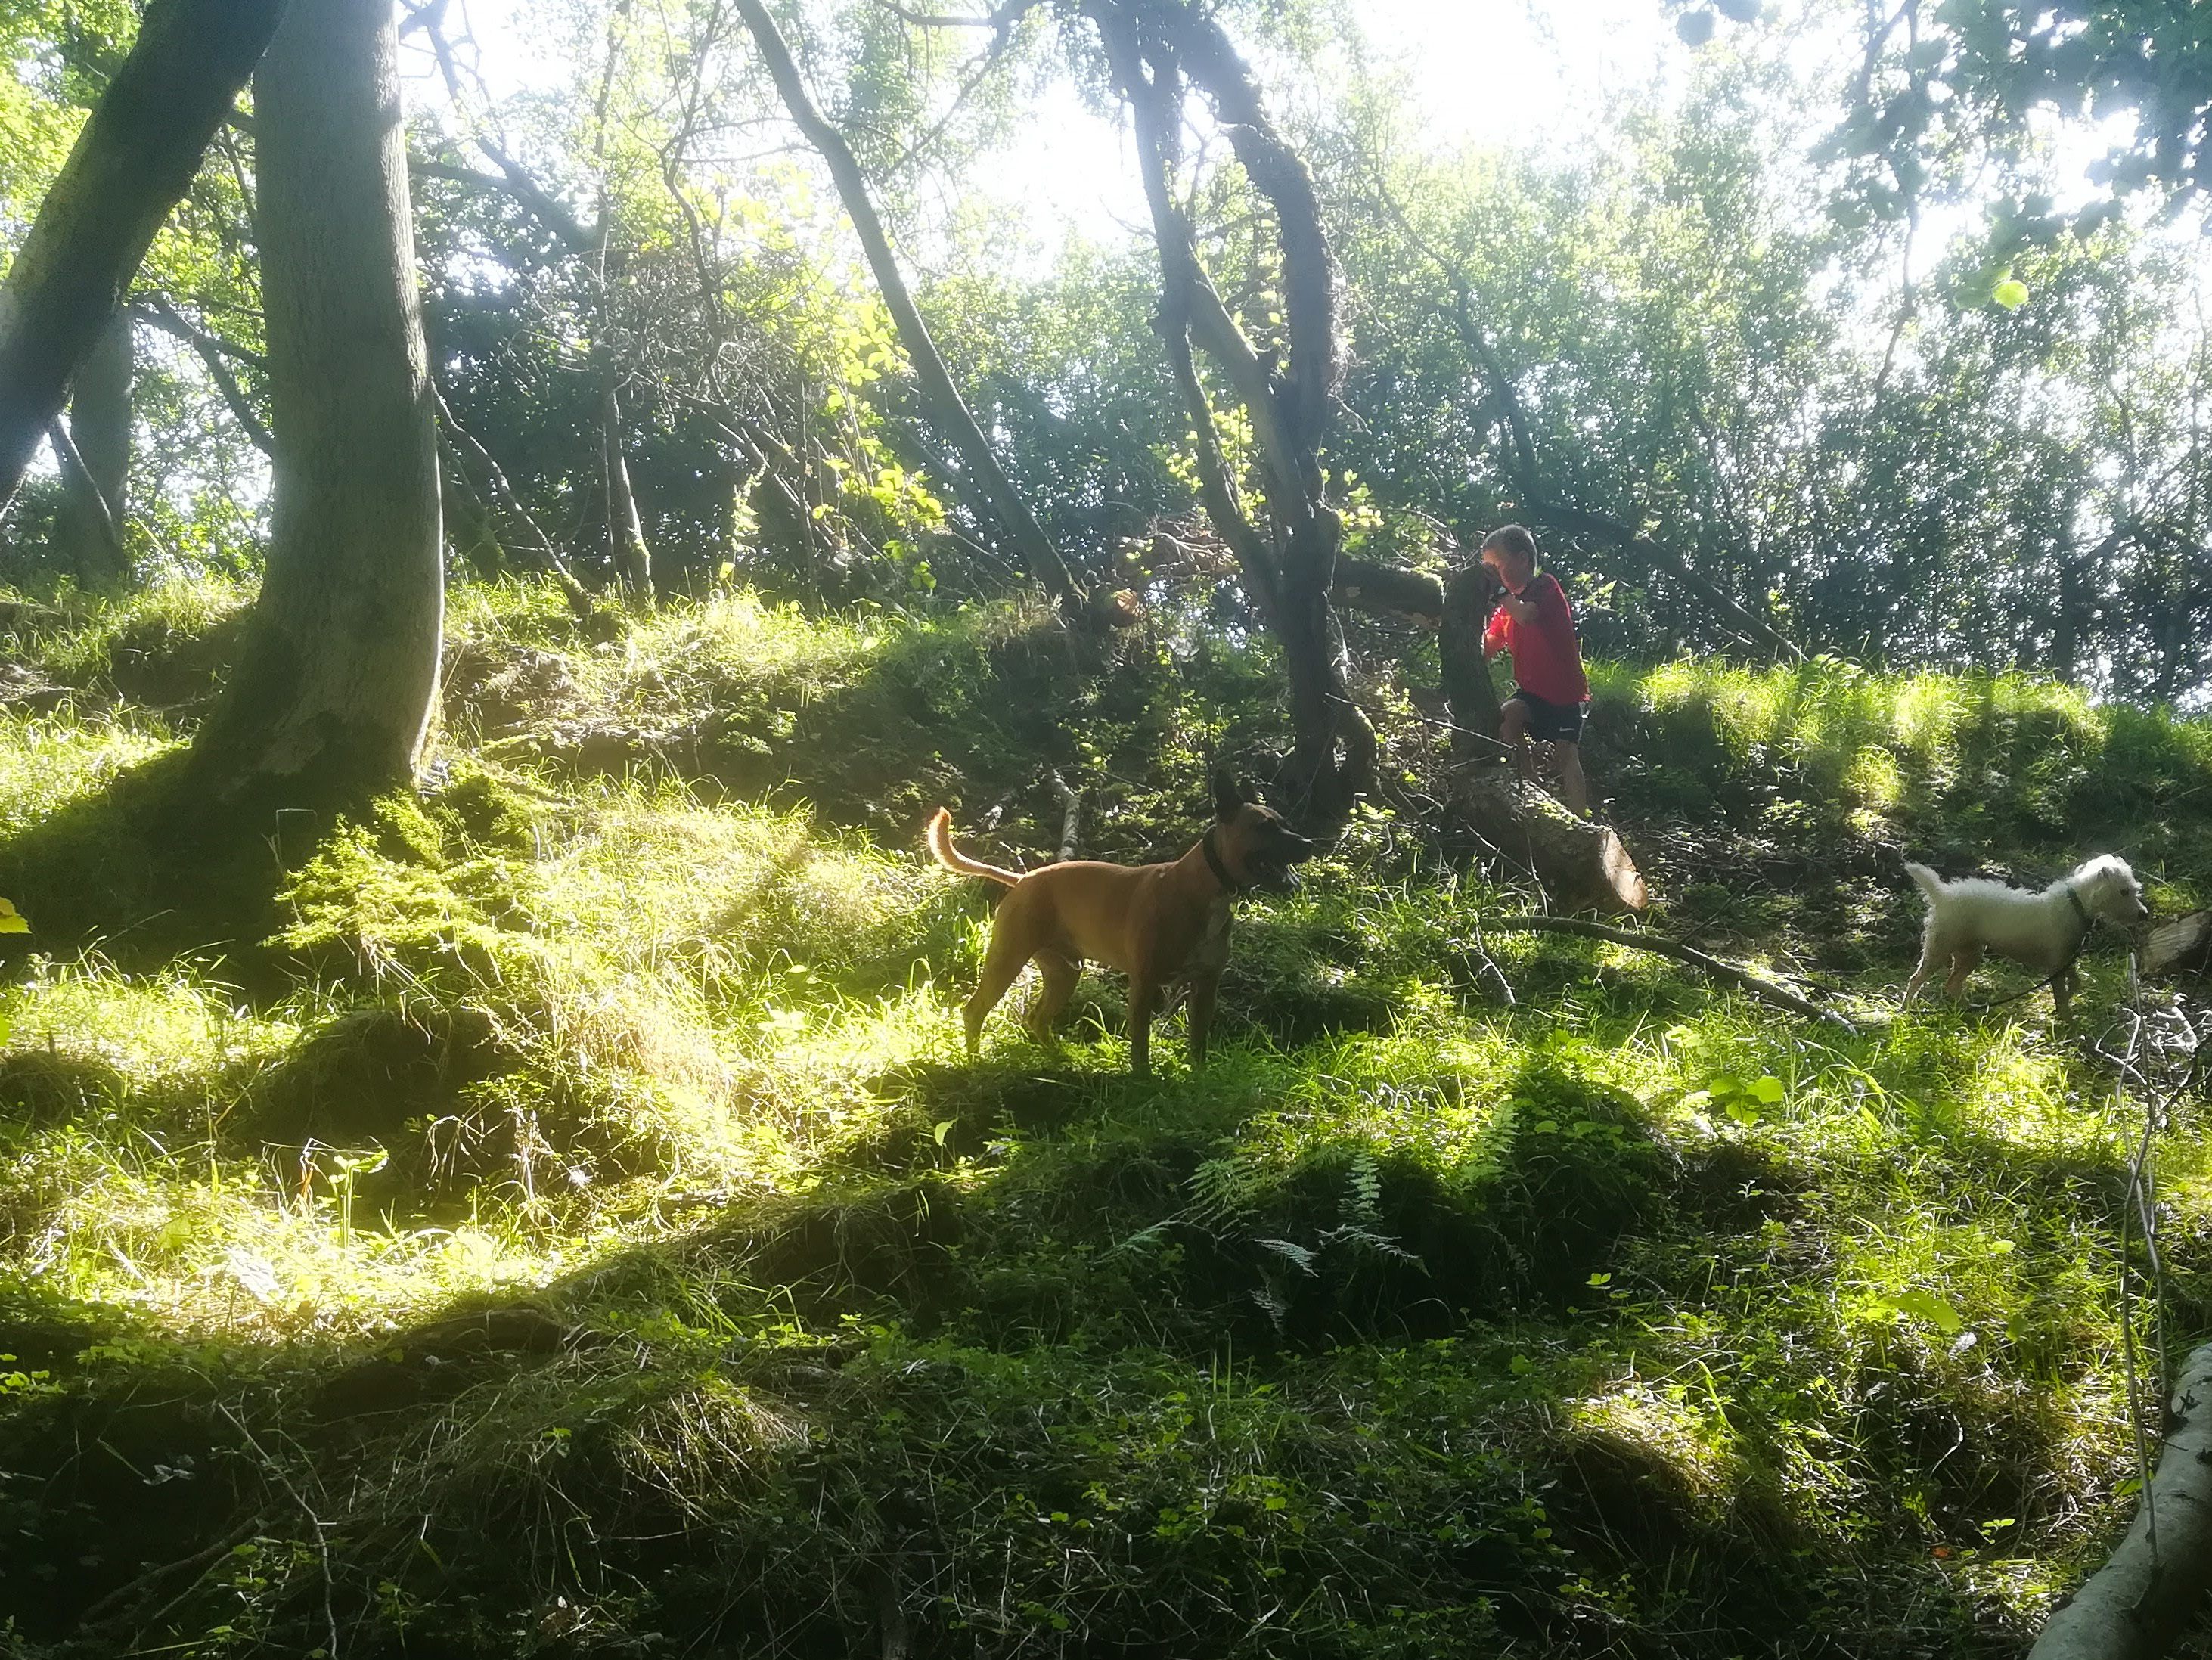 Dogs and children playing in the woods